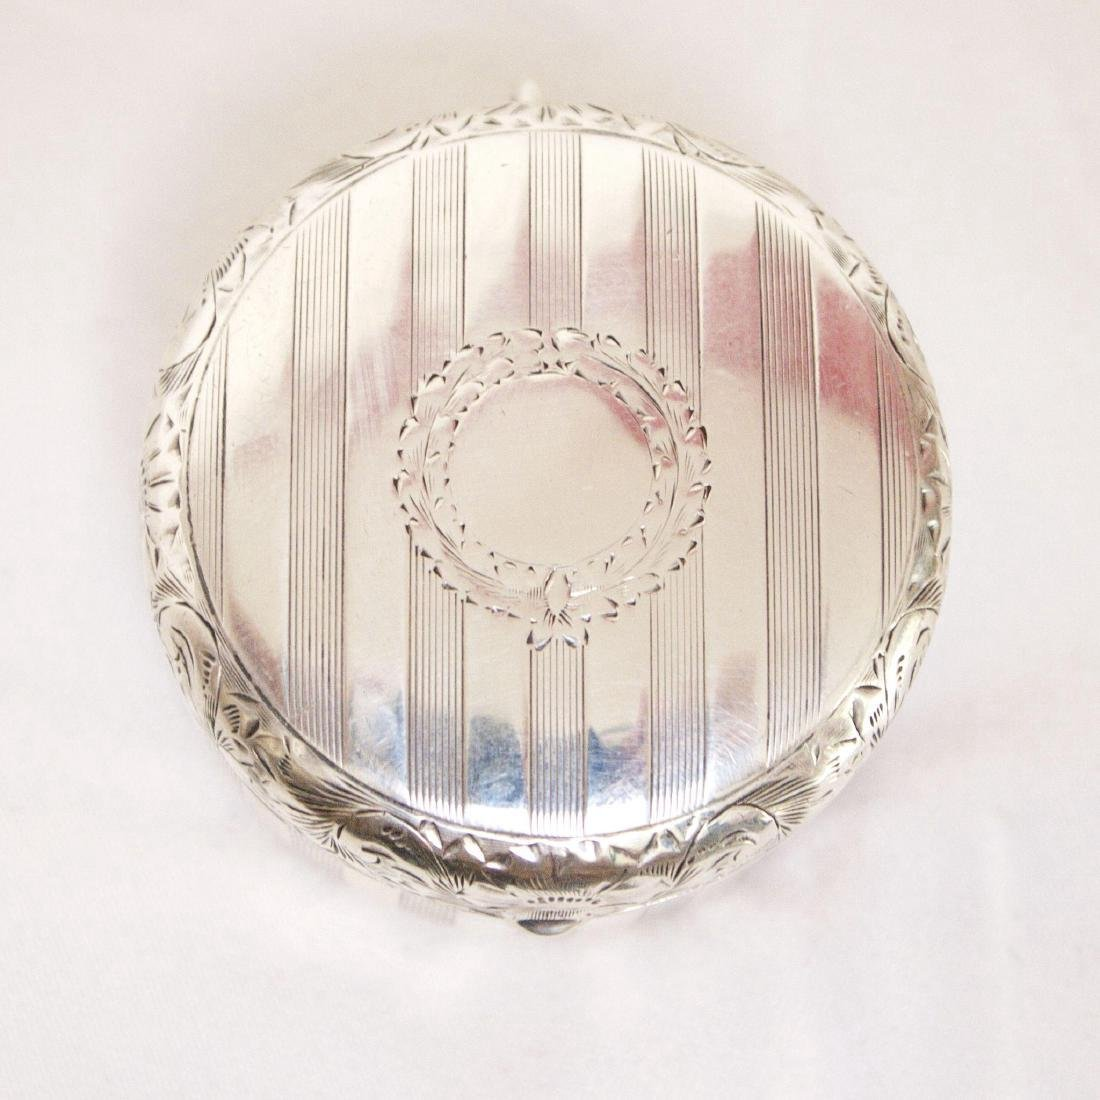 Antique Sterling Silver Rouge Pot with Mirror, 1880 - 5